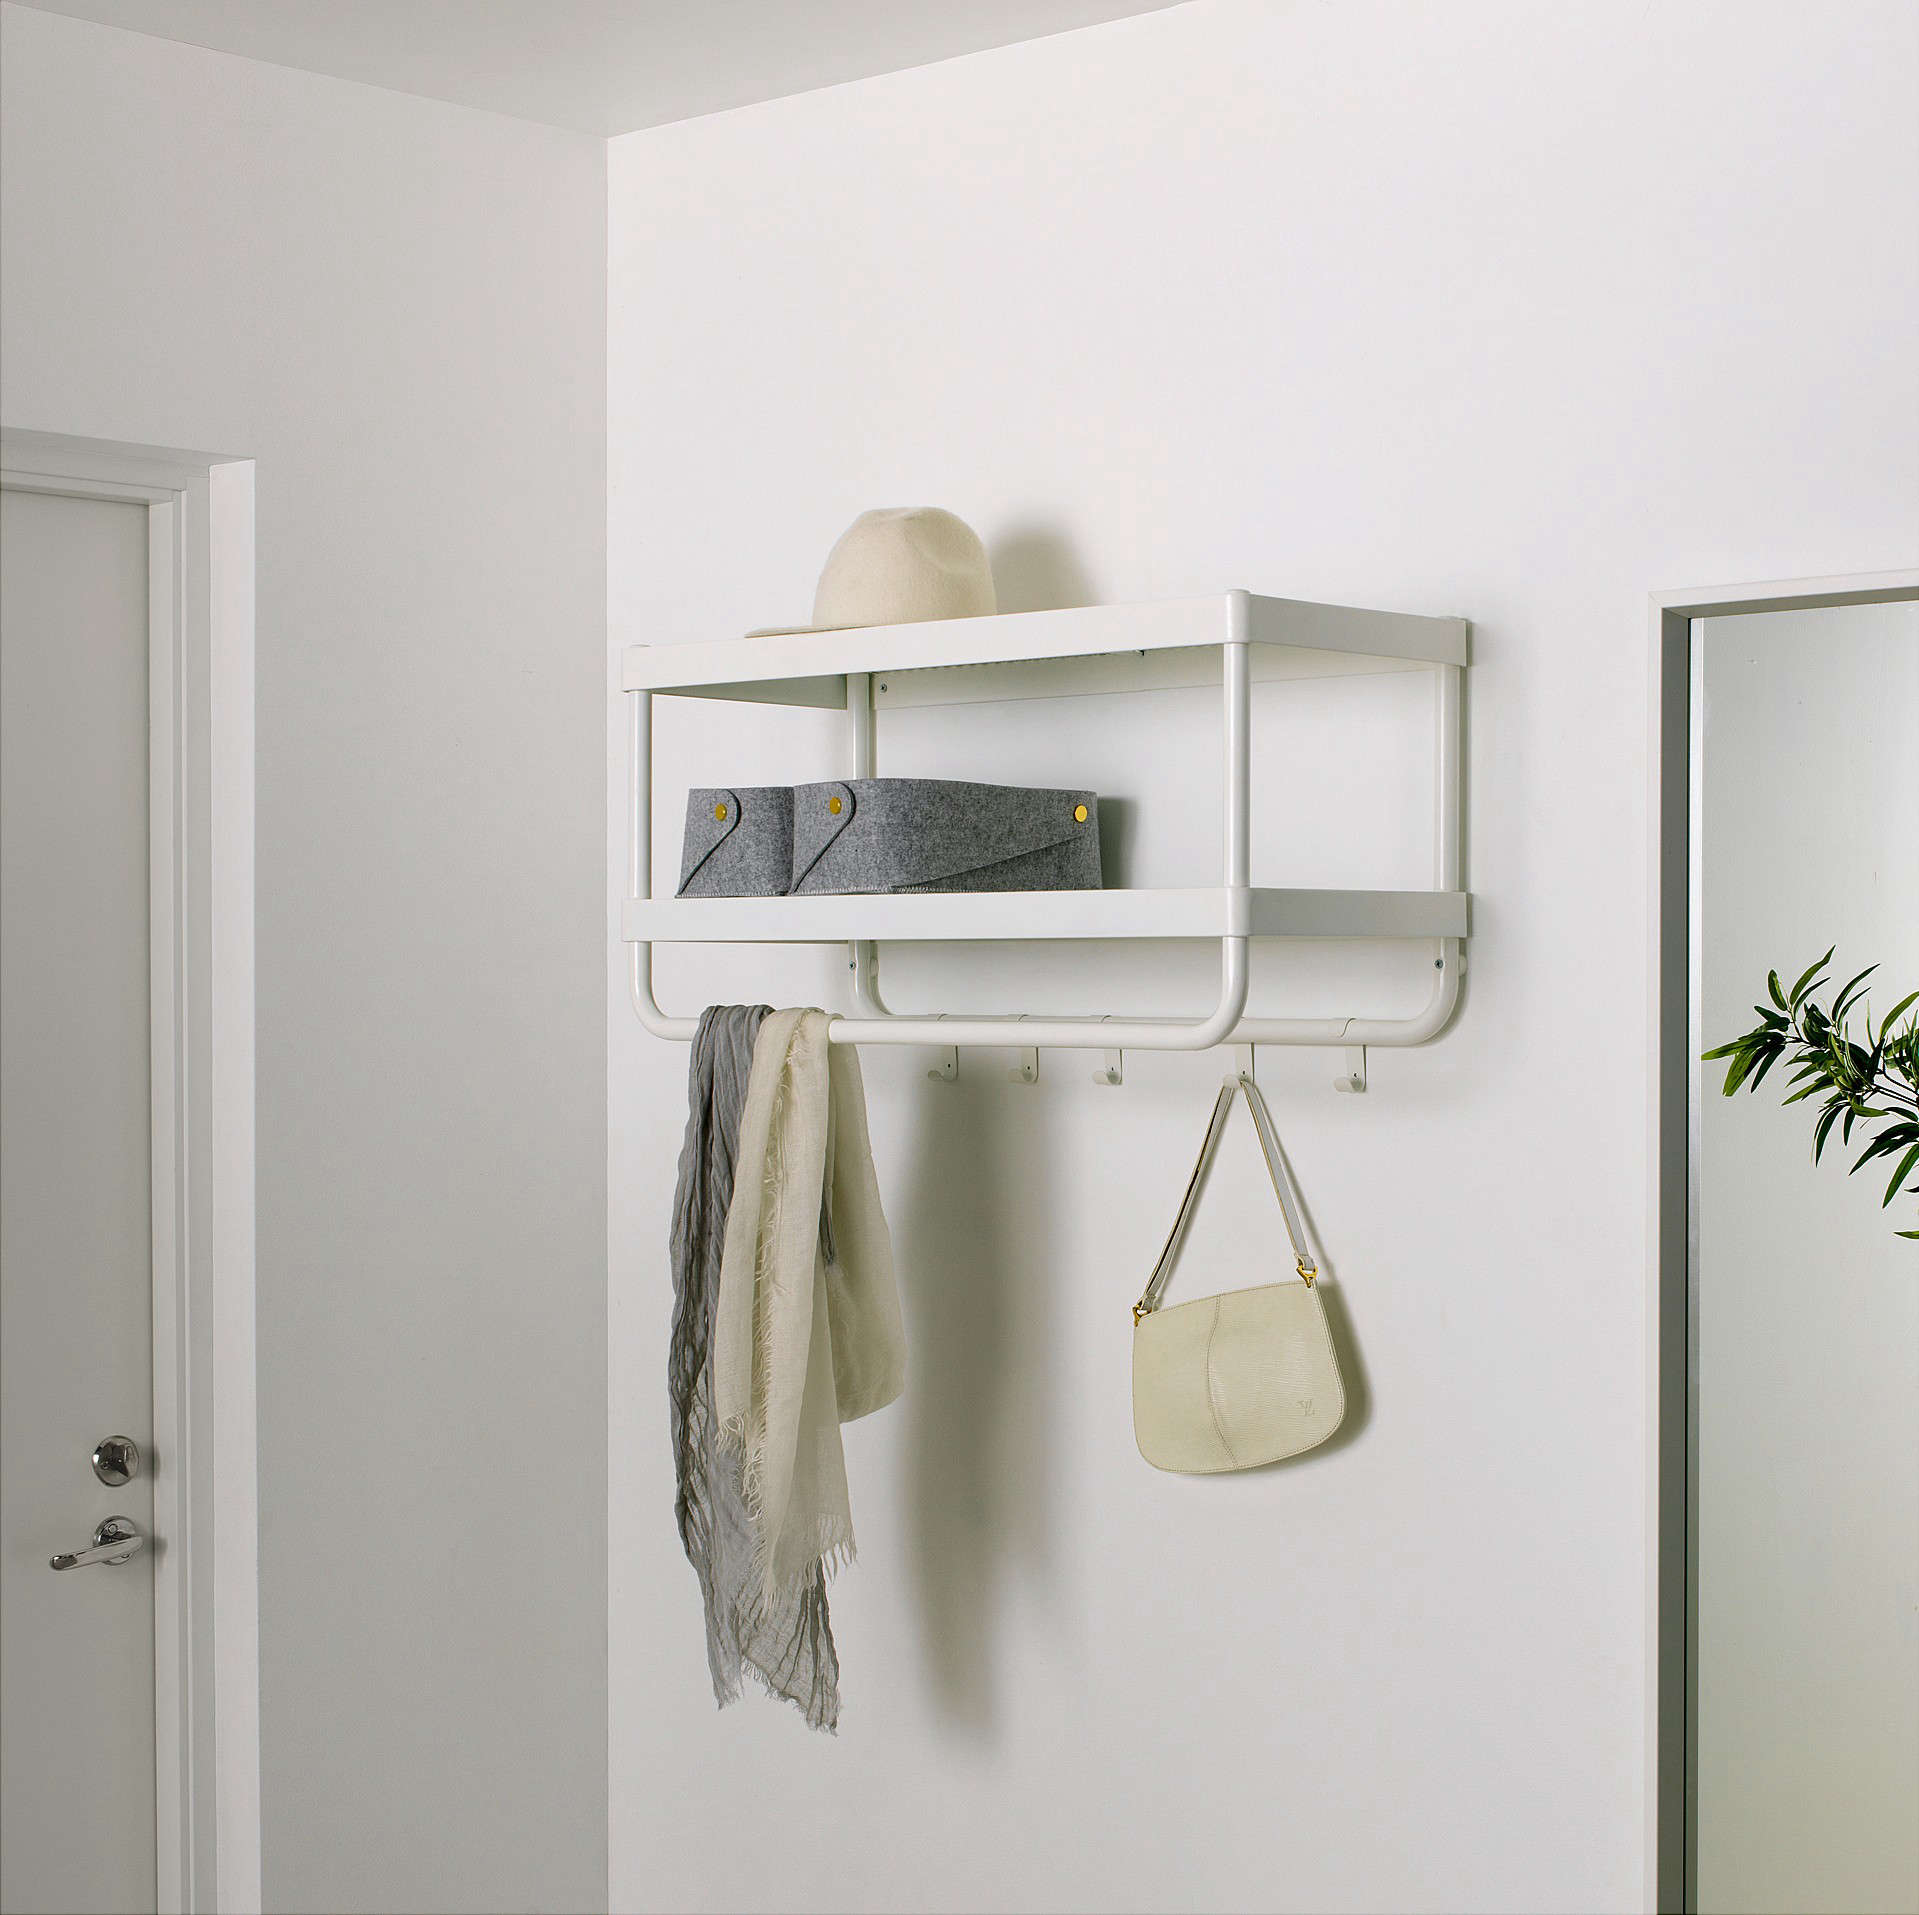 Wall Coat Rack Ikea ikea storage solutions for minimalists on a budget - remodelista